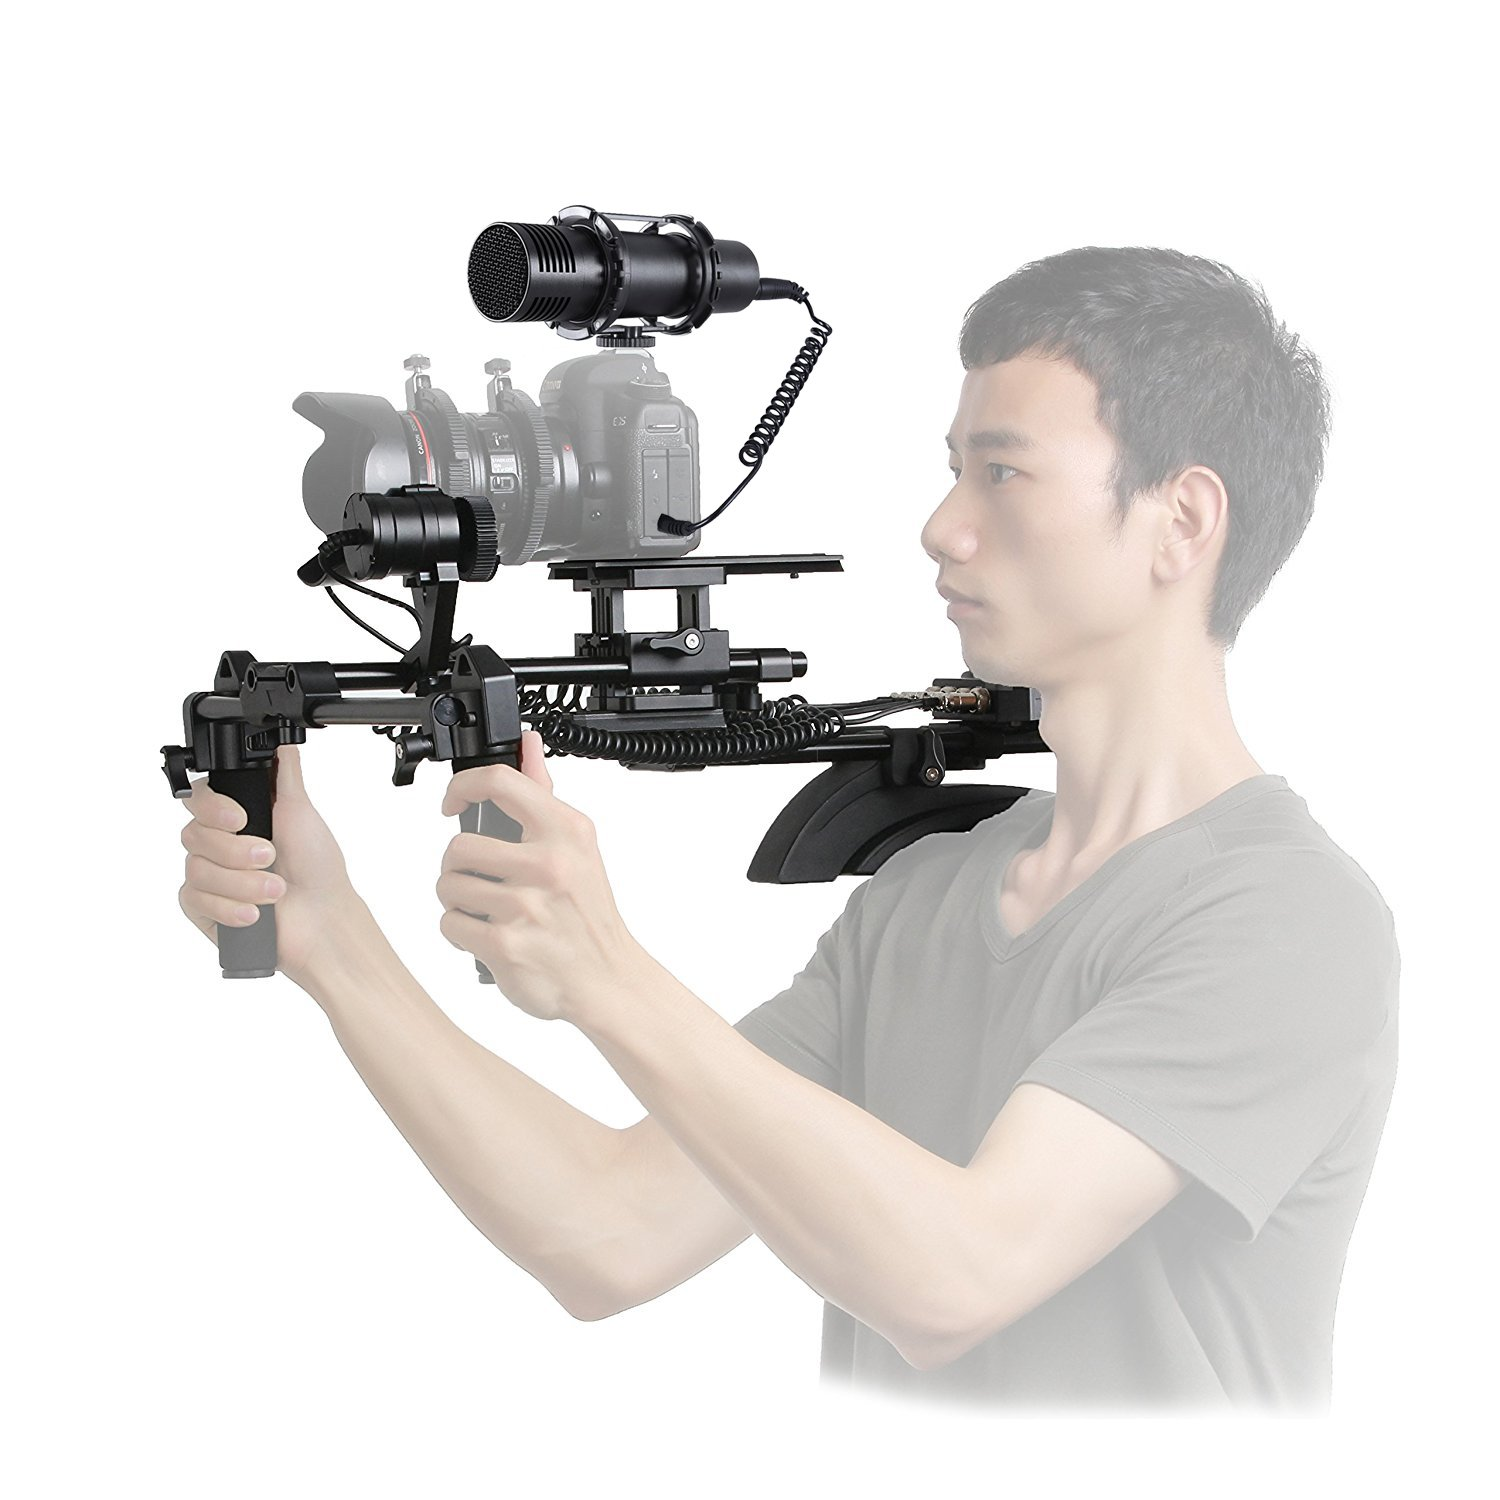 Movo Motorized Follow Focus and Zoom Control Video Shoulder Support System with External Stereo Microphone for Canon, Nikon, Sony DSLR Cameras and Camcorders by Movo